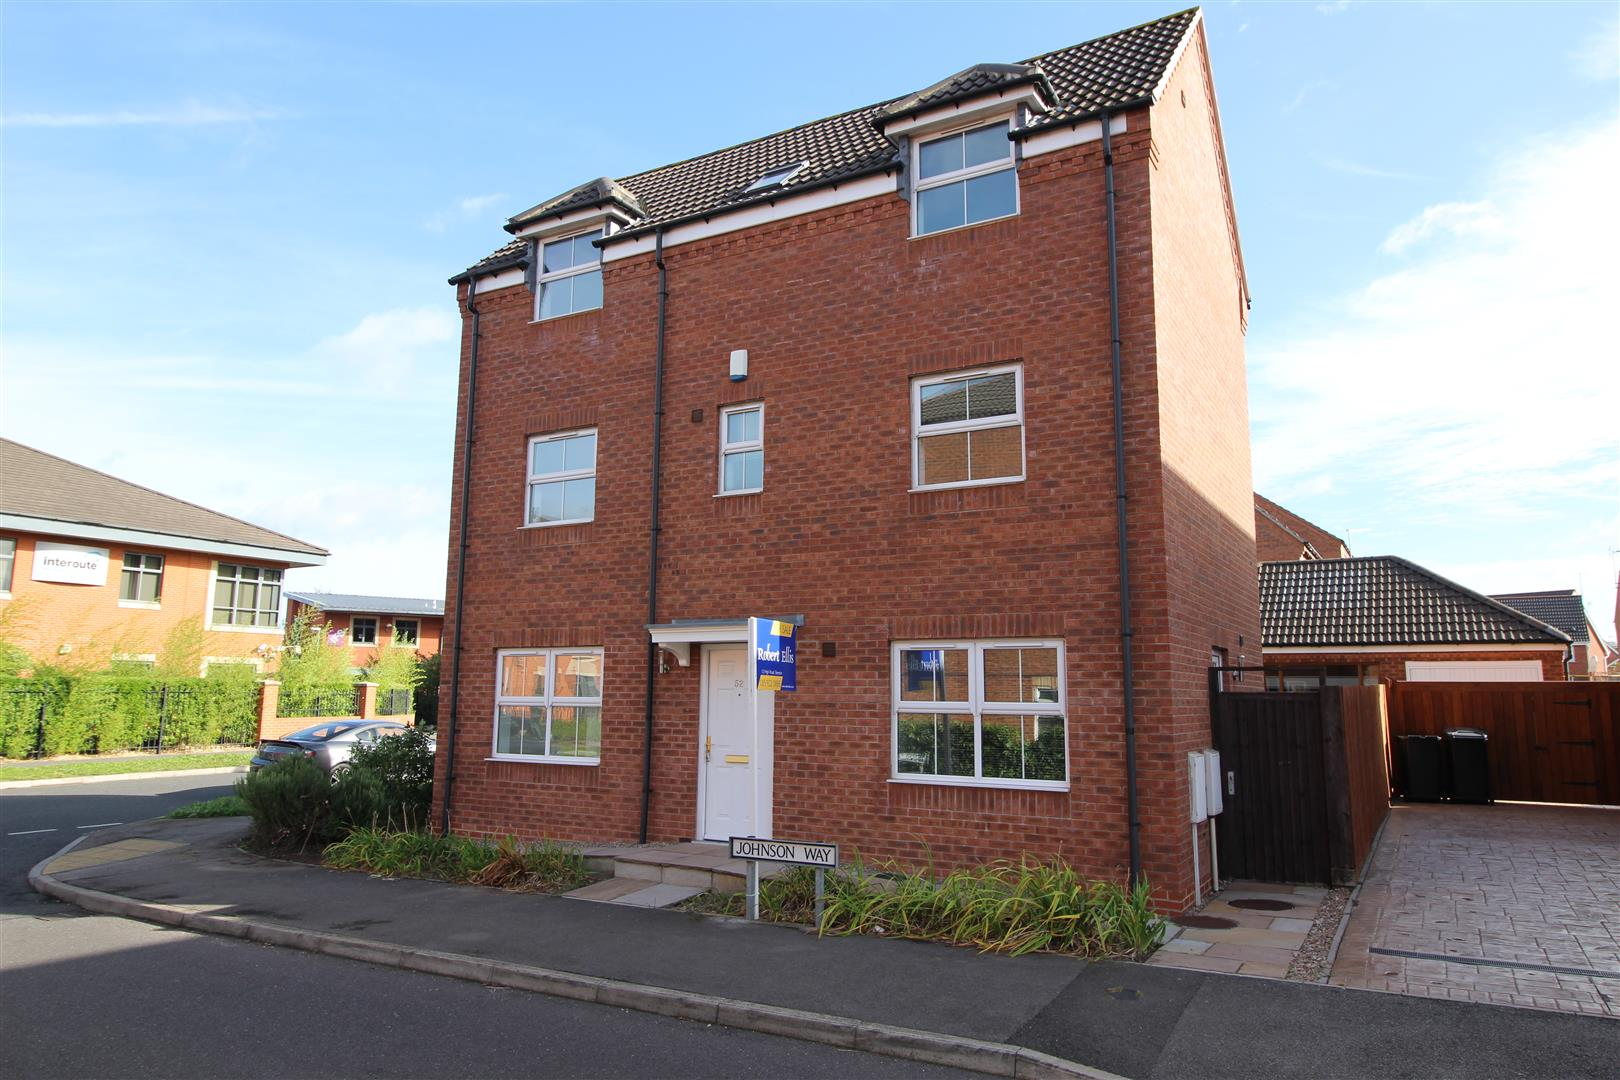 5 Bedrooms Detached House for sale in Johnson Way, Chilwell